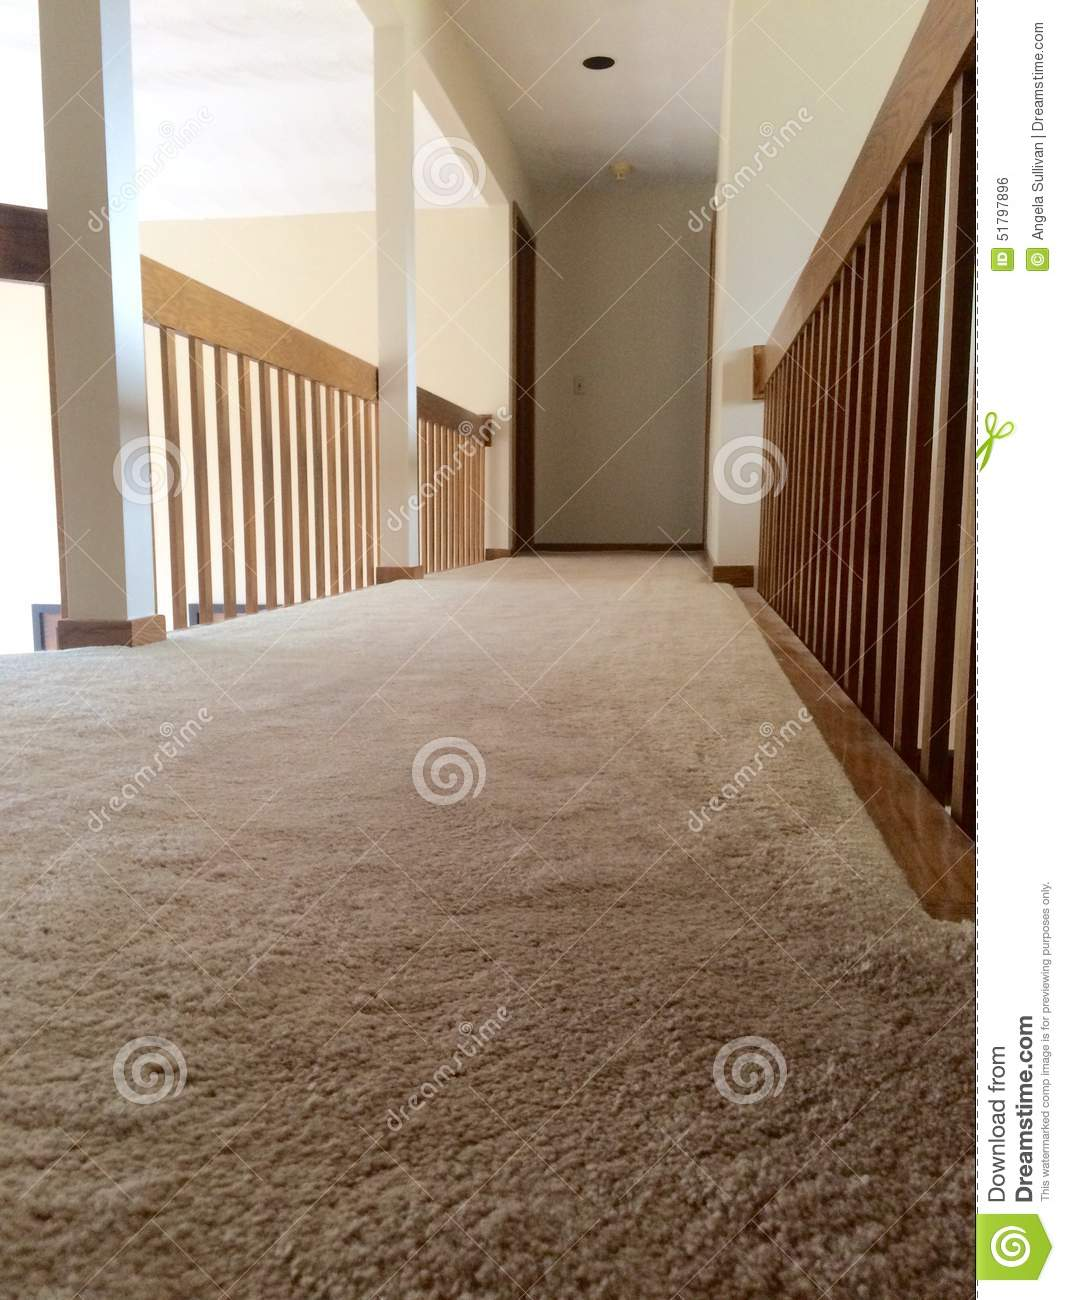 Clean Plush Carpet In Hallway Stock Photo Image 51797896